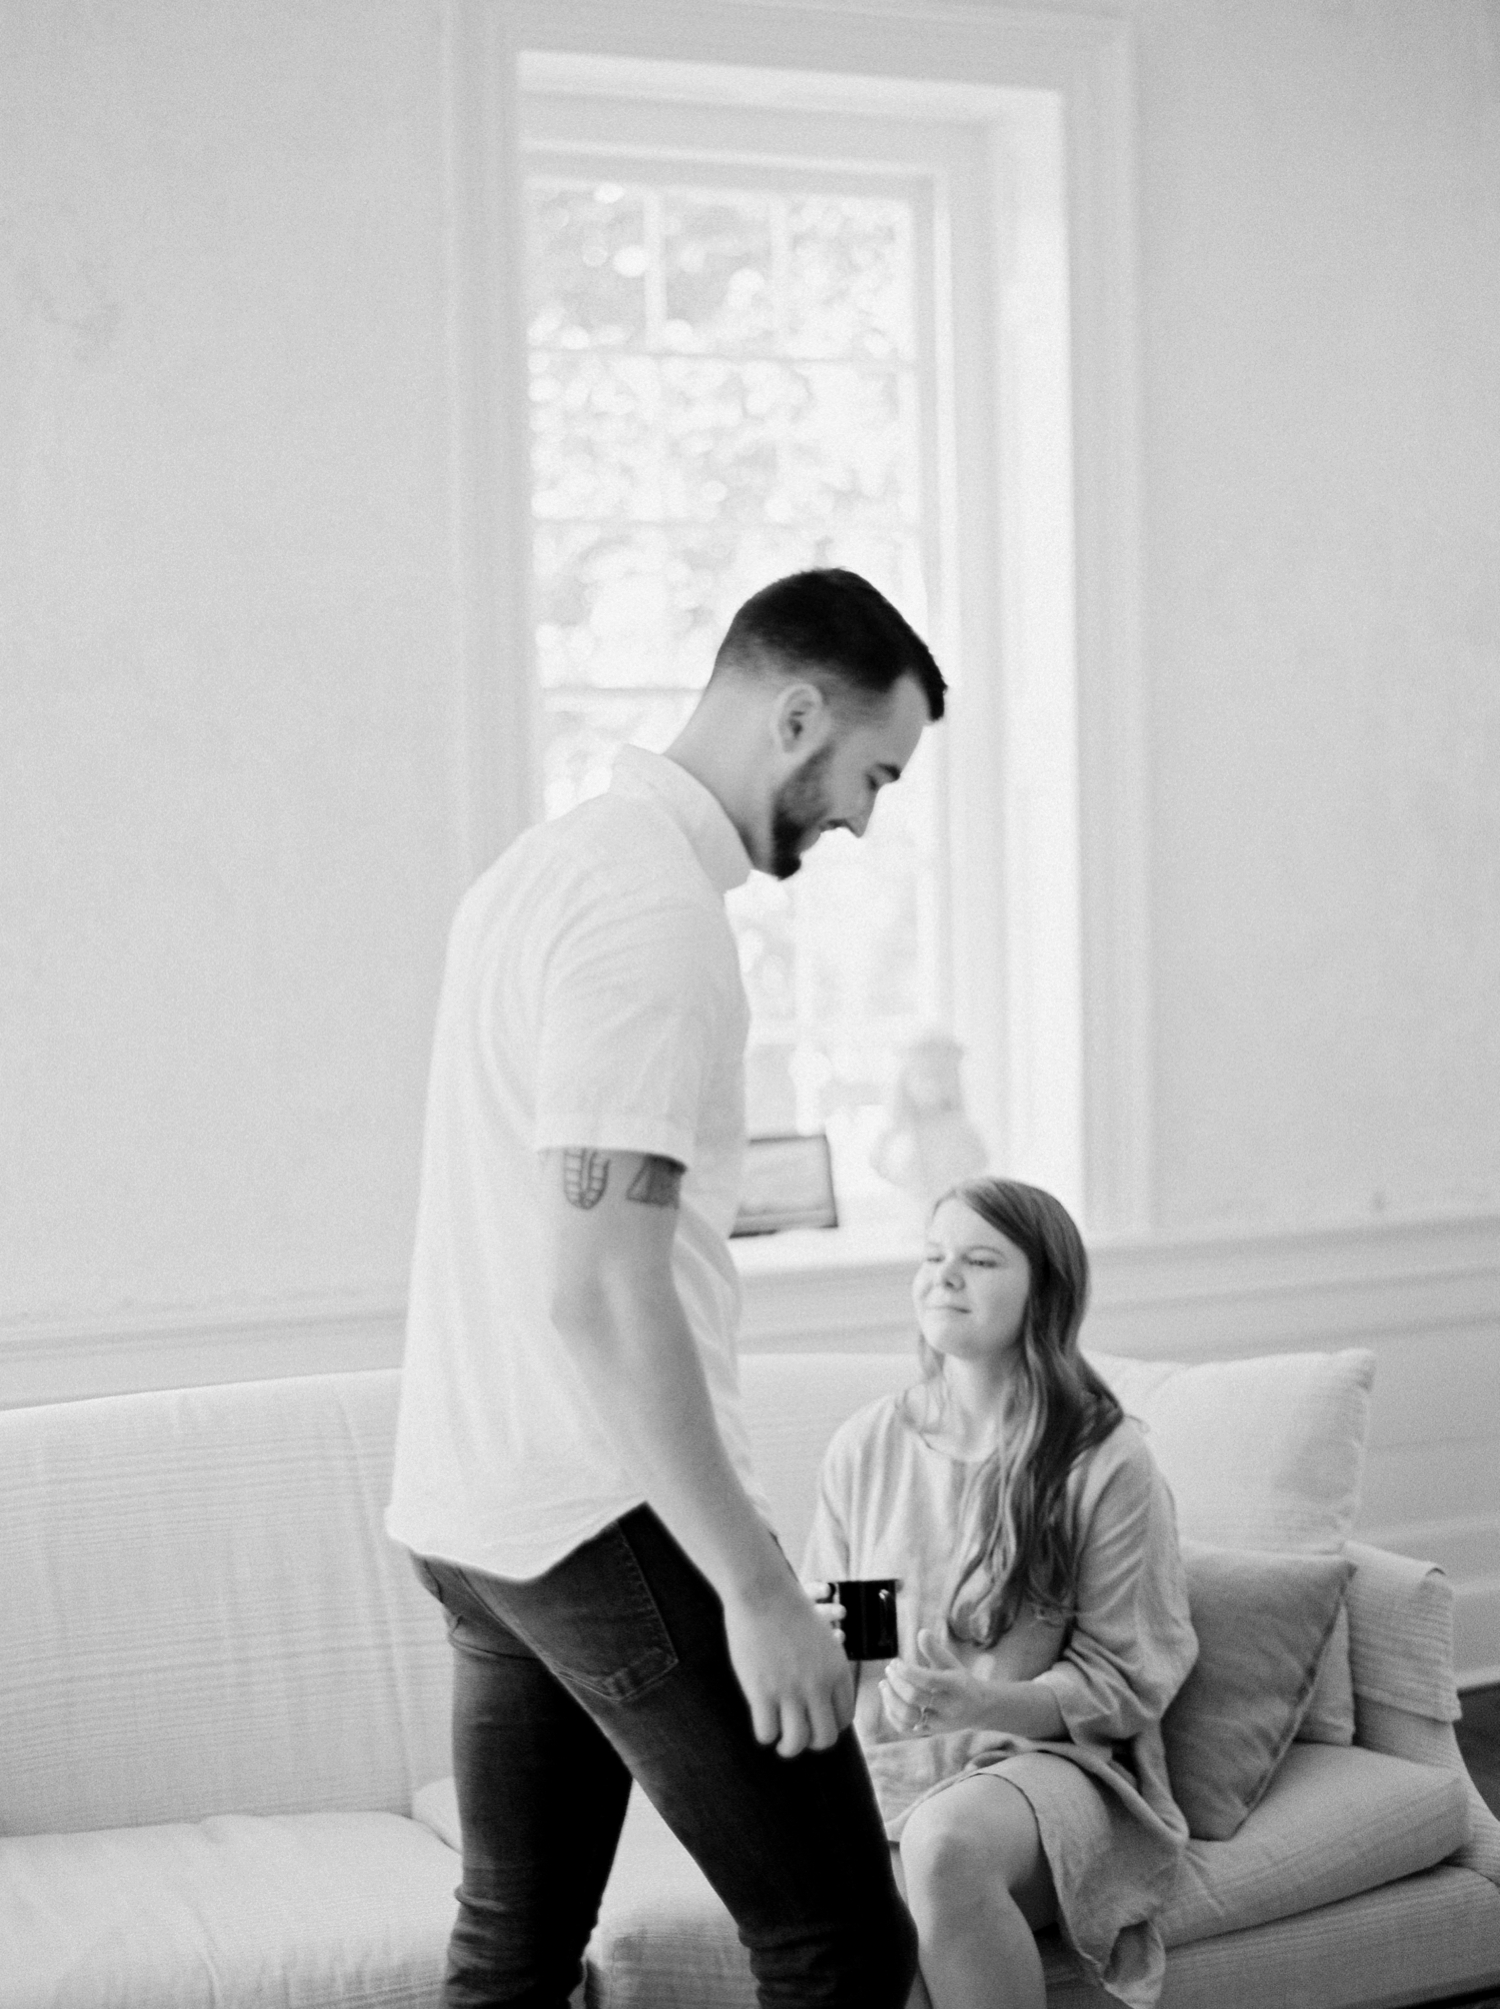 Charleston wedding photographer | anniversary session | fine art film photography | Calgary Wedding Photographers | Calgary couples photographer | Justine Milton Photography | couple |